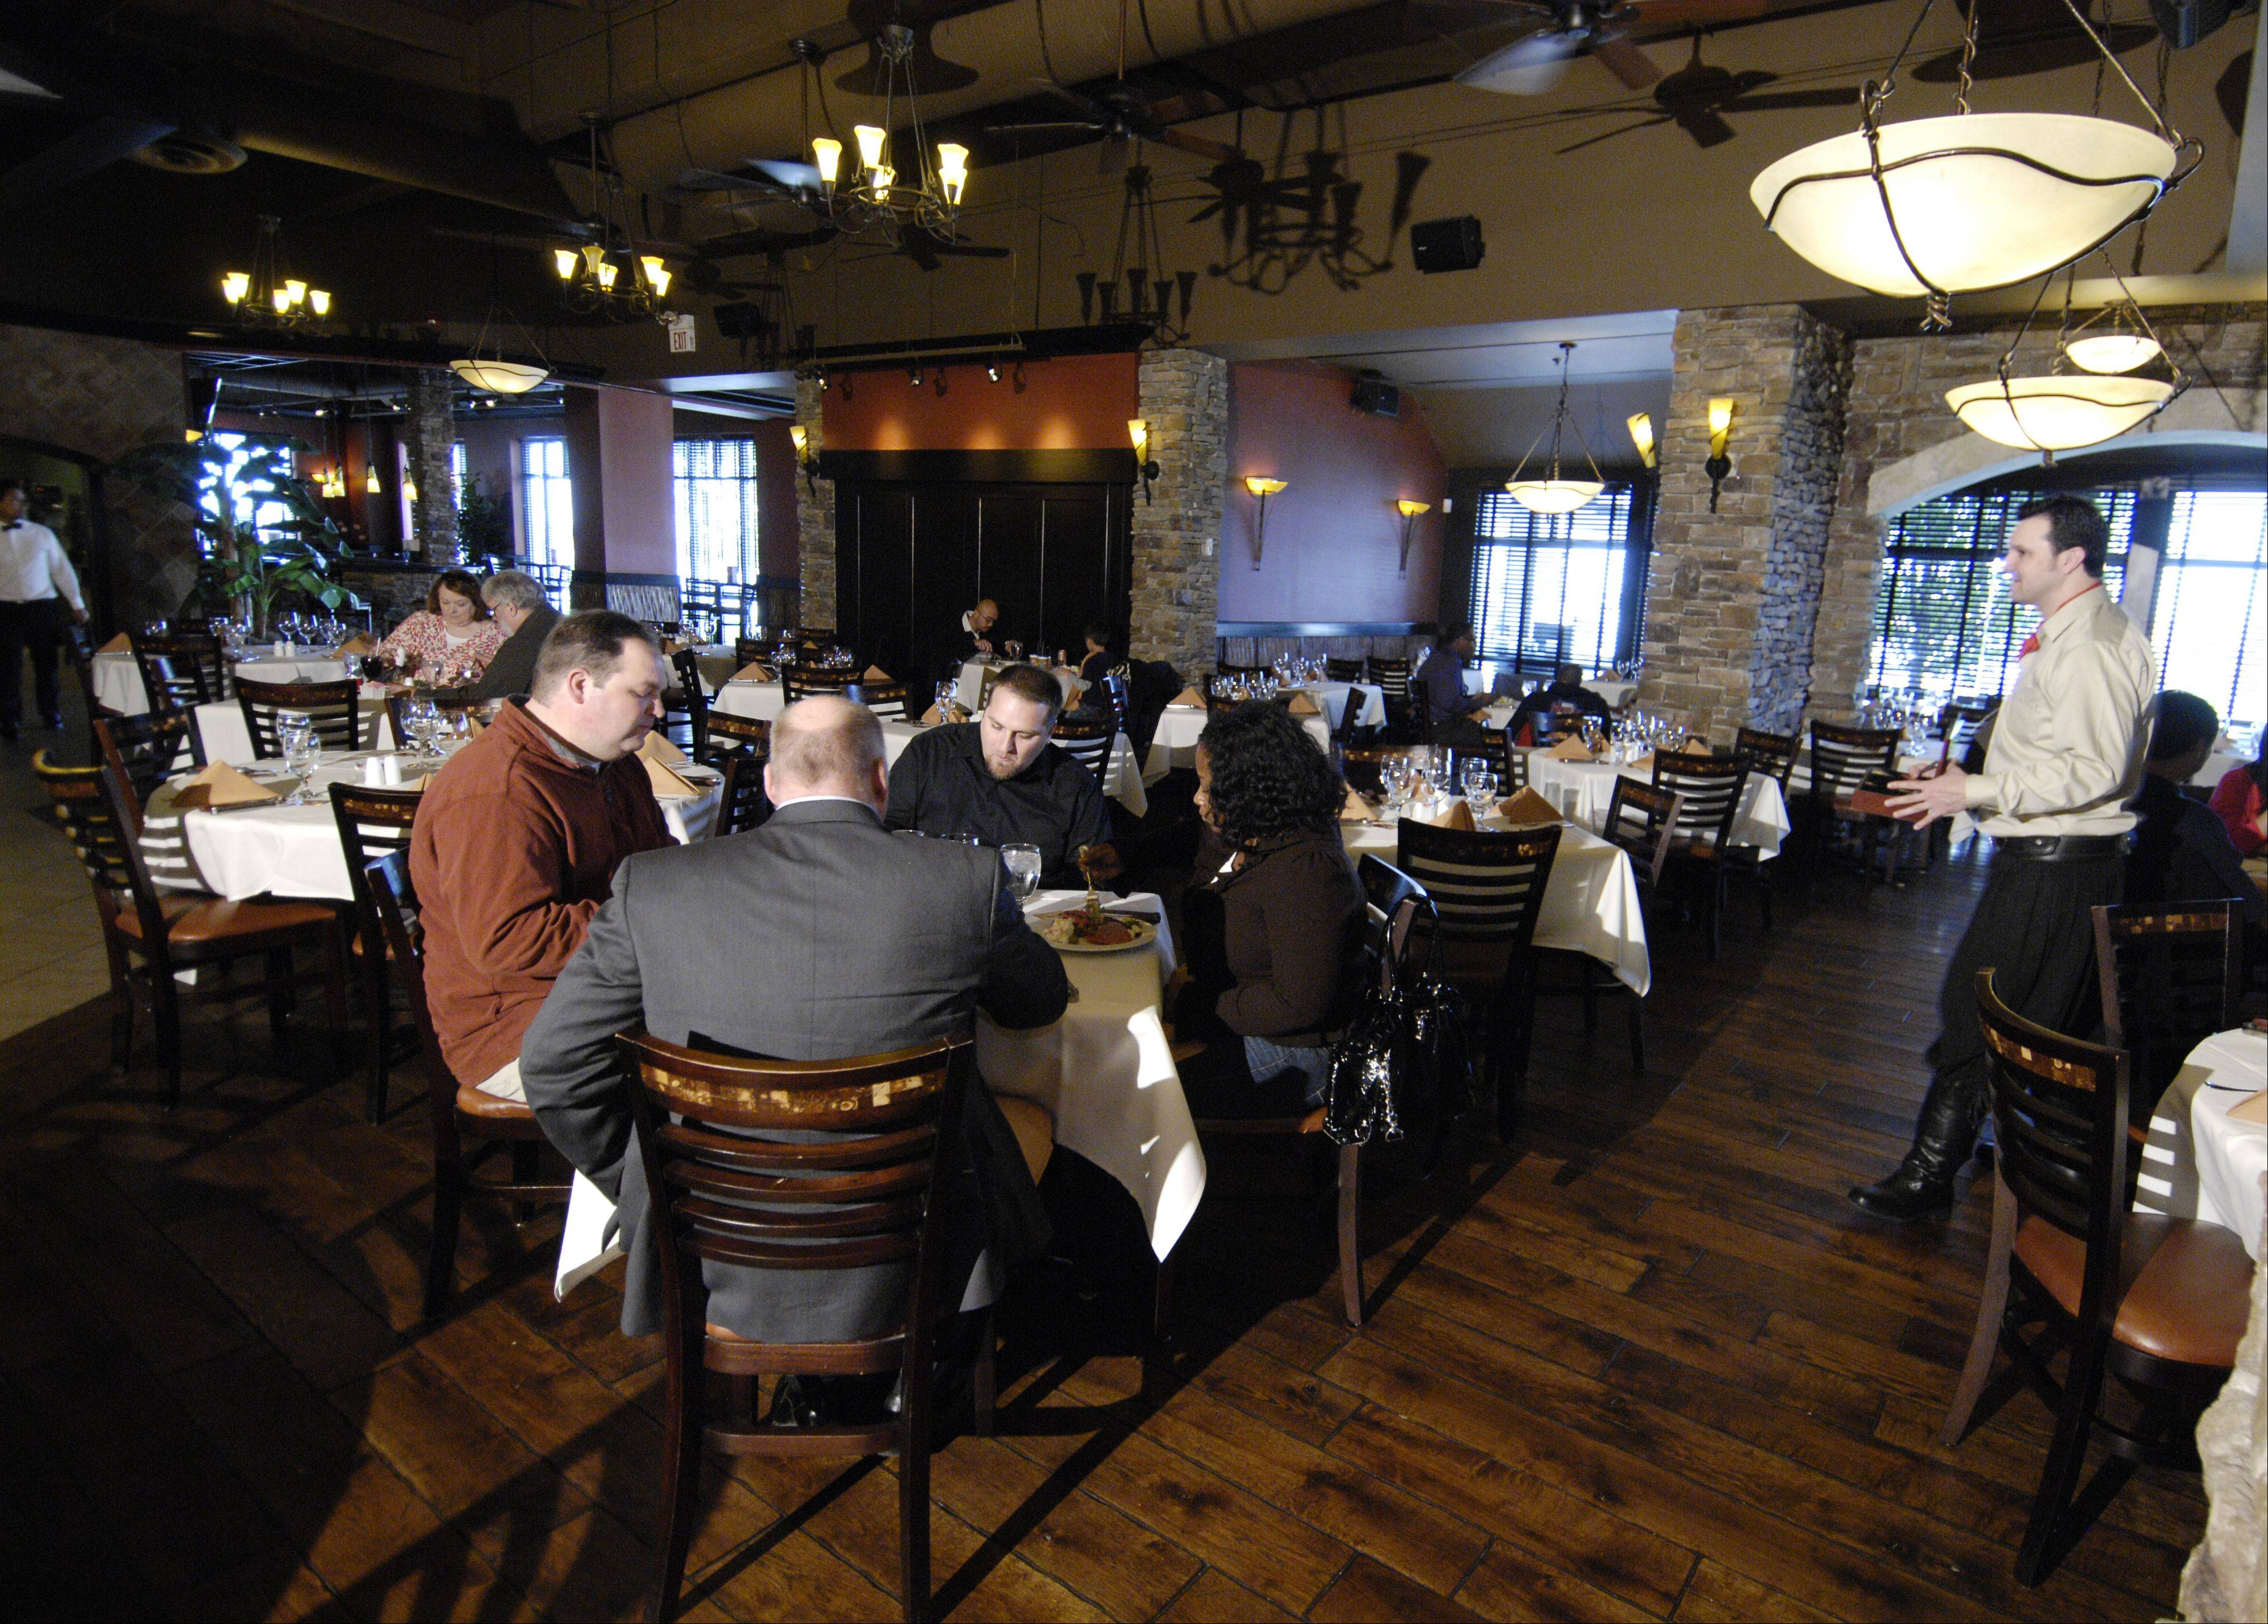 Diners fill the rooms at lunch and dinner at Chama Gaucha Brazilian steakhouse in Downers Grove.